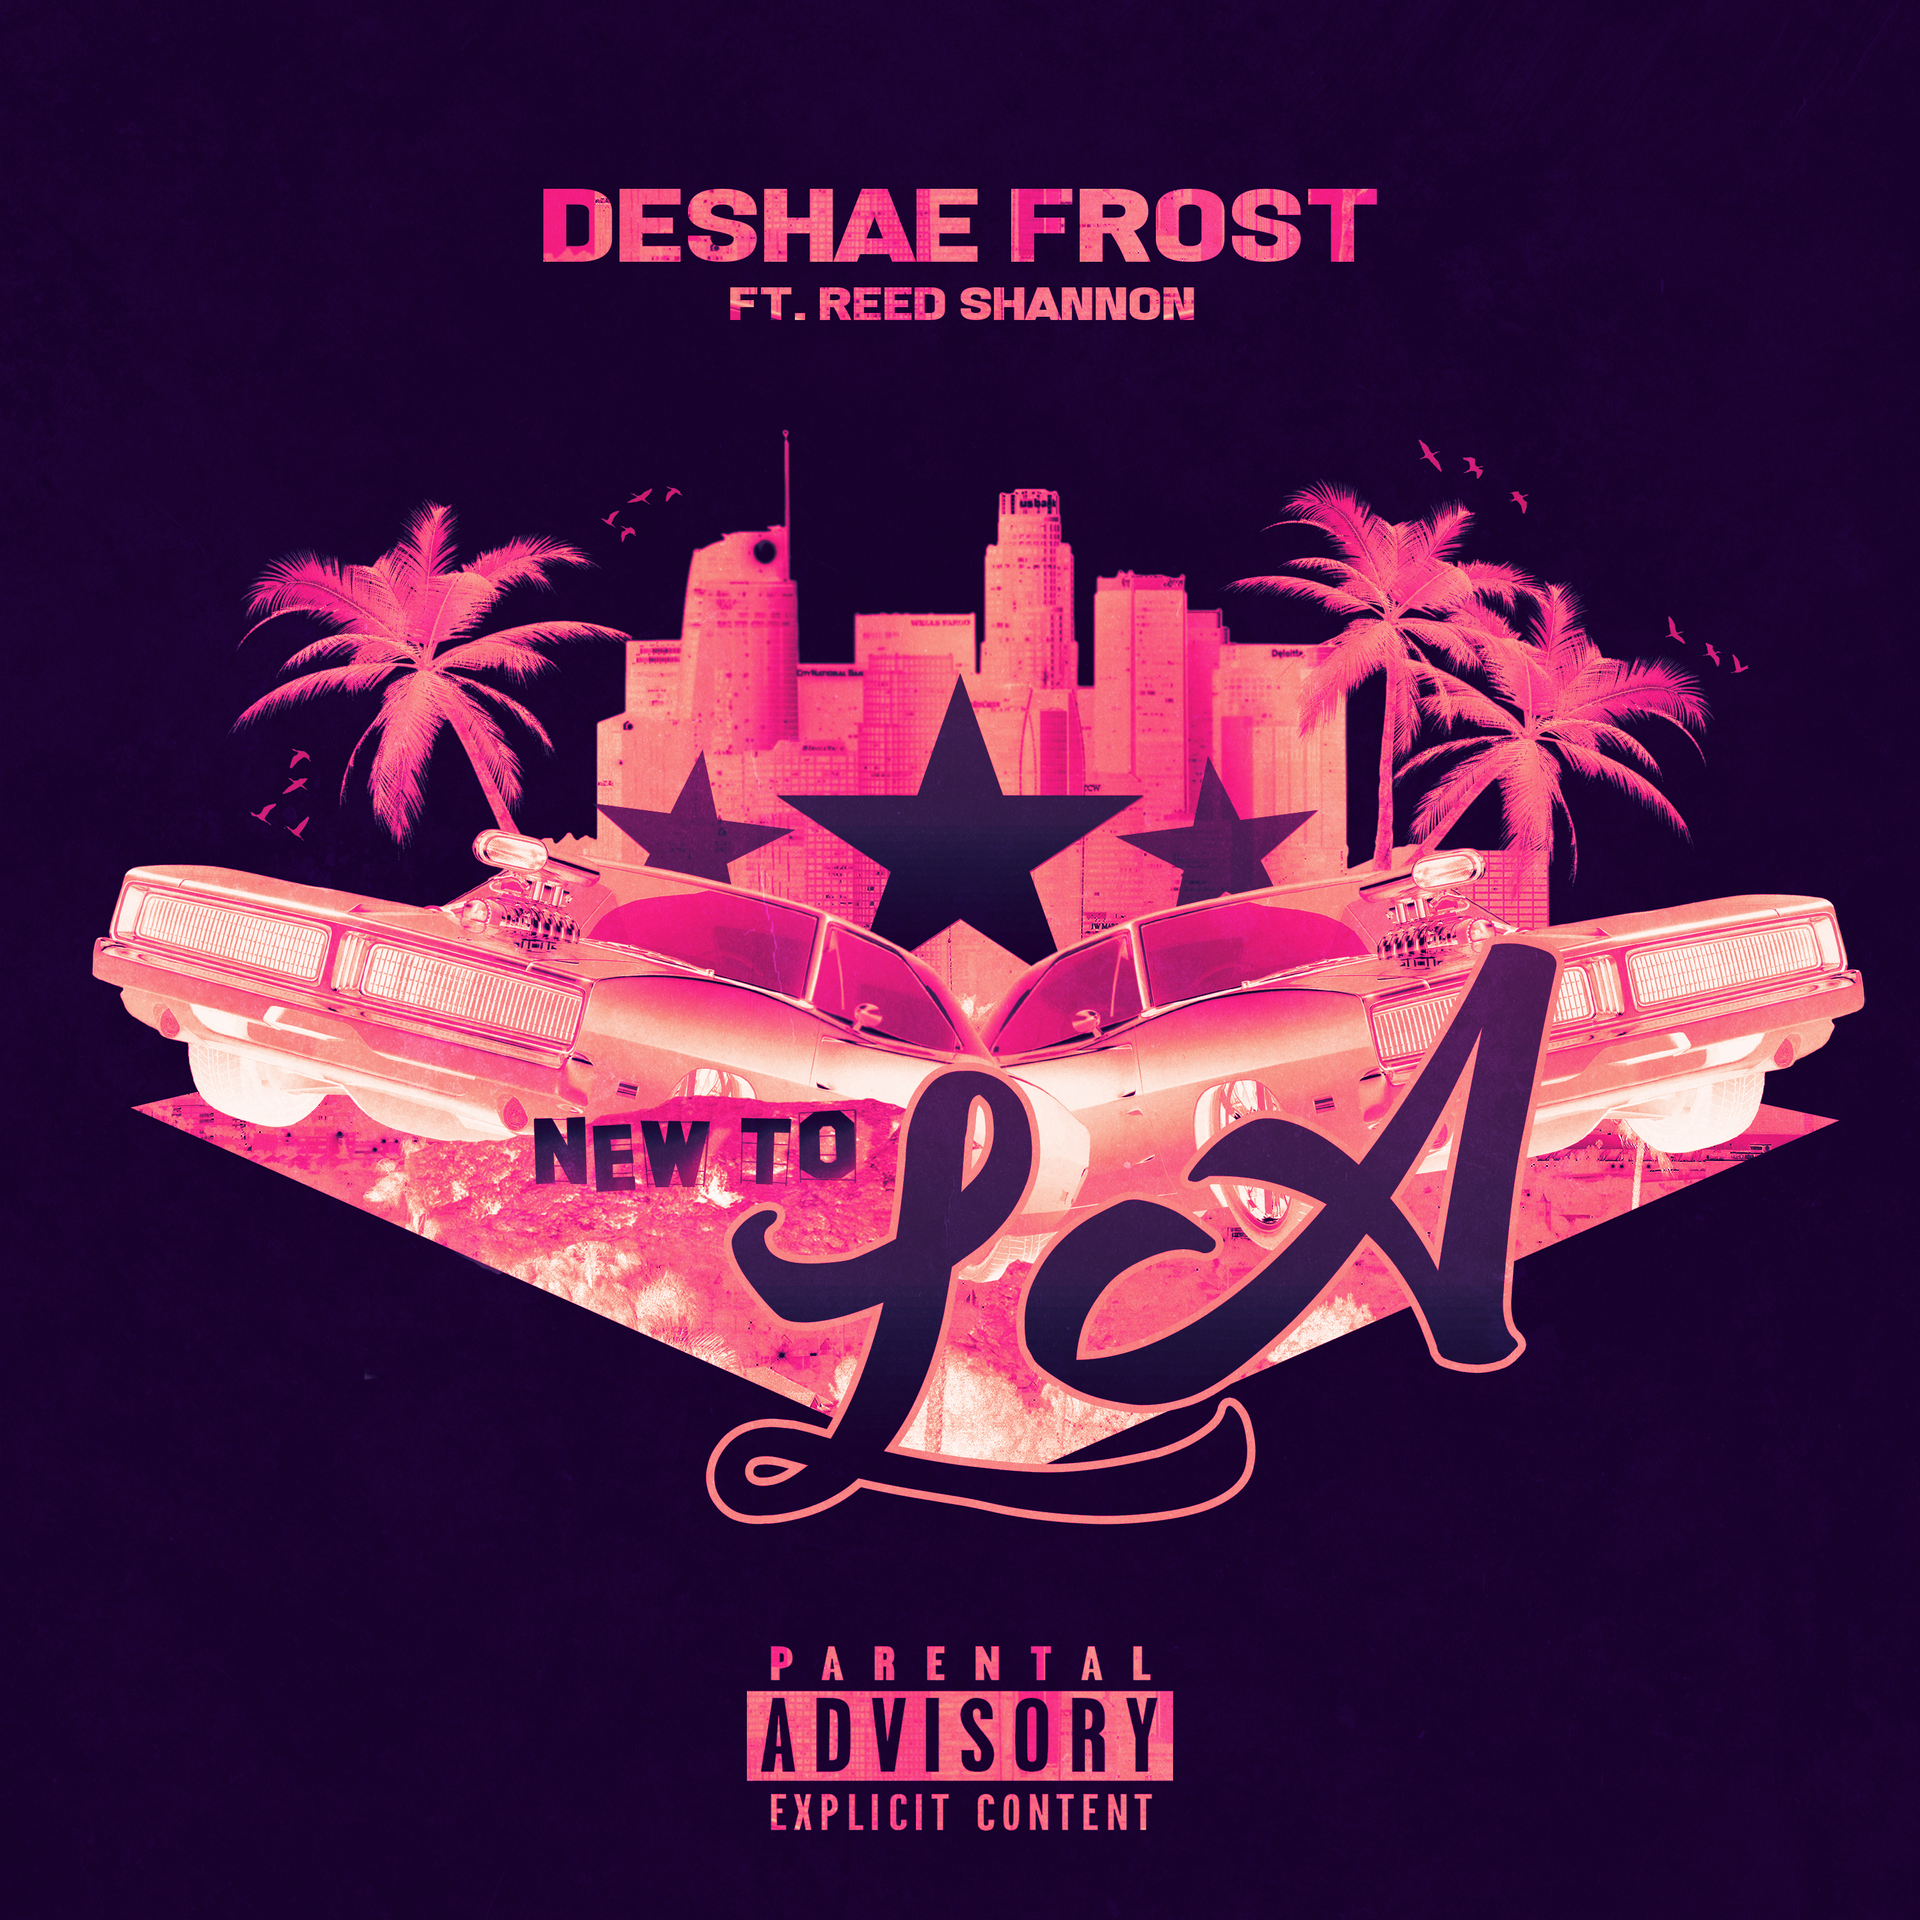 New to LA - Deshae Frost